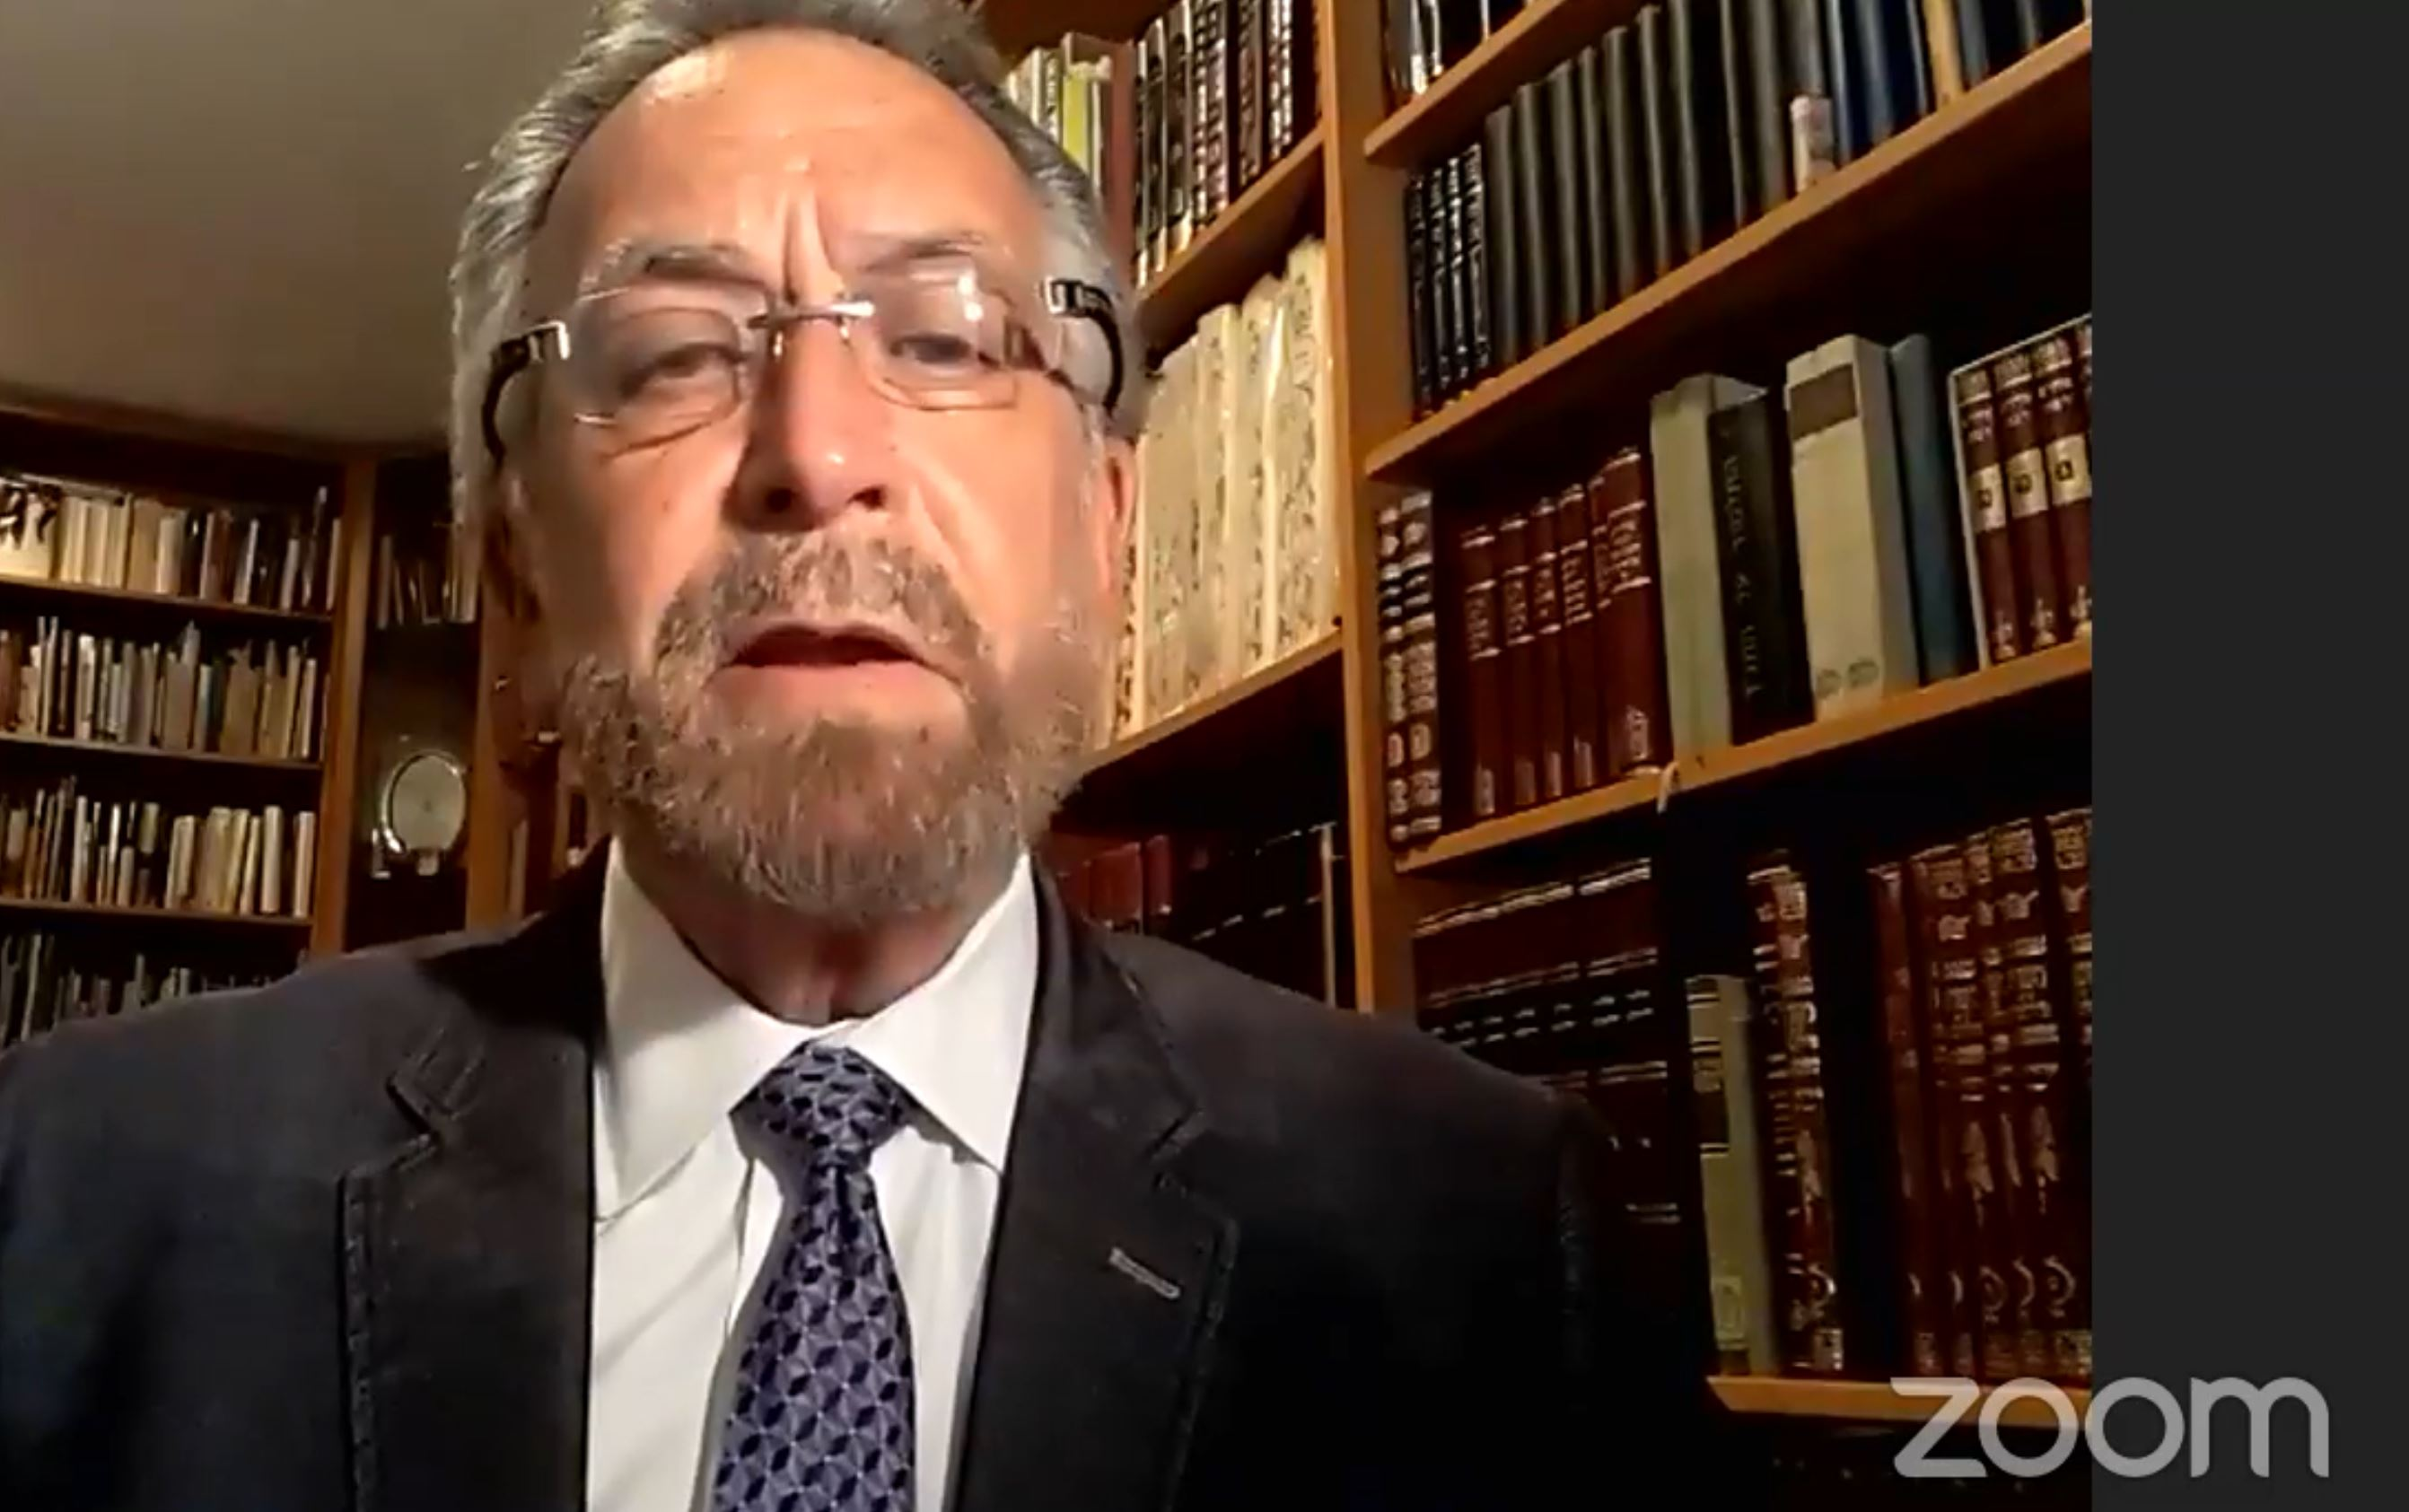 Cheif Rabbi David Rosen speaks from his home on International Holocaust Remembrance Day